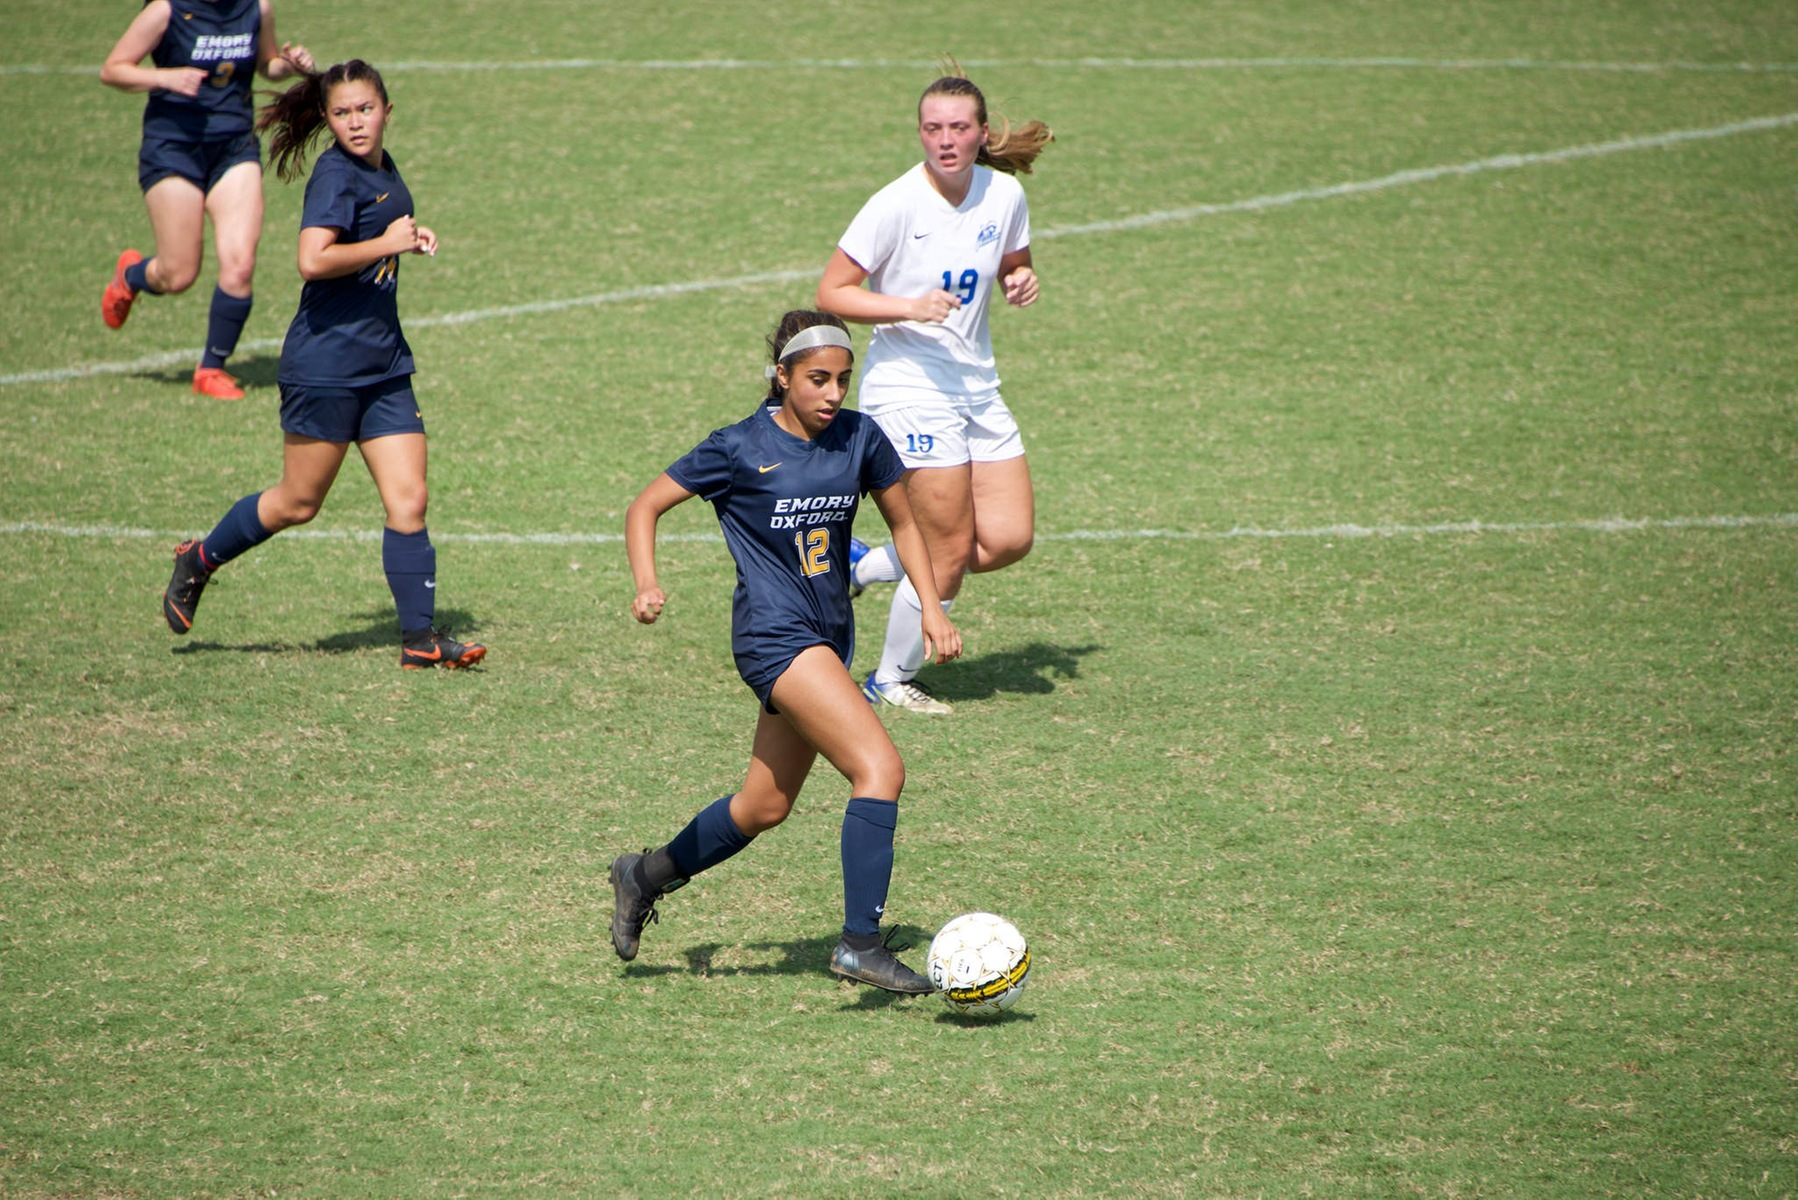 LaGrange College Edges Women's Soccer 3-1